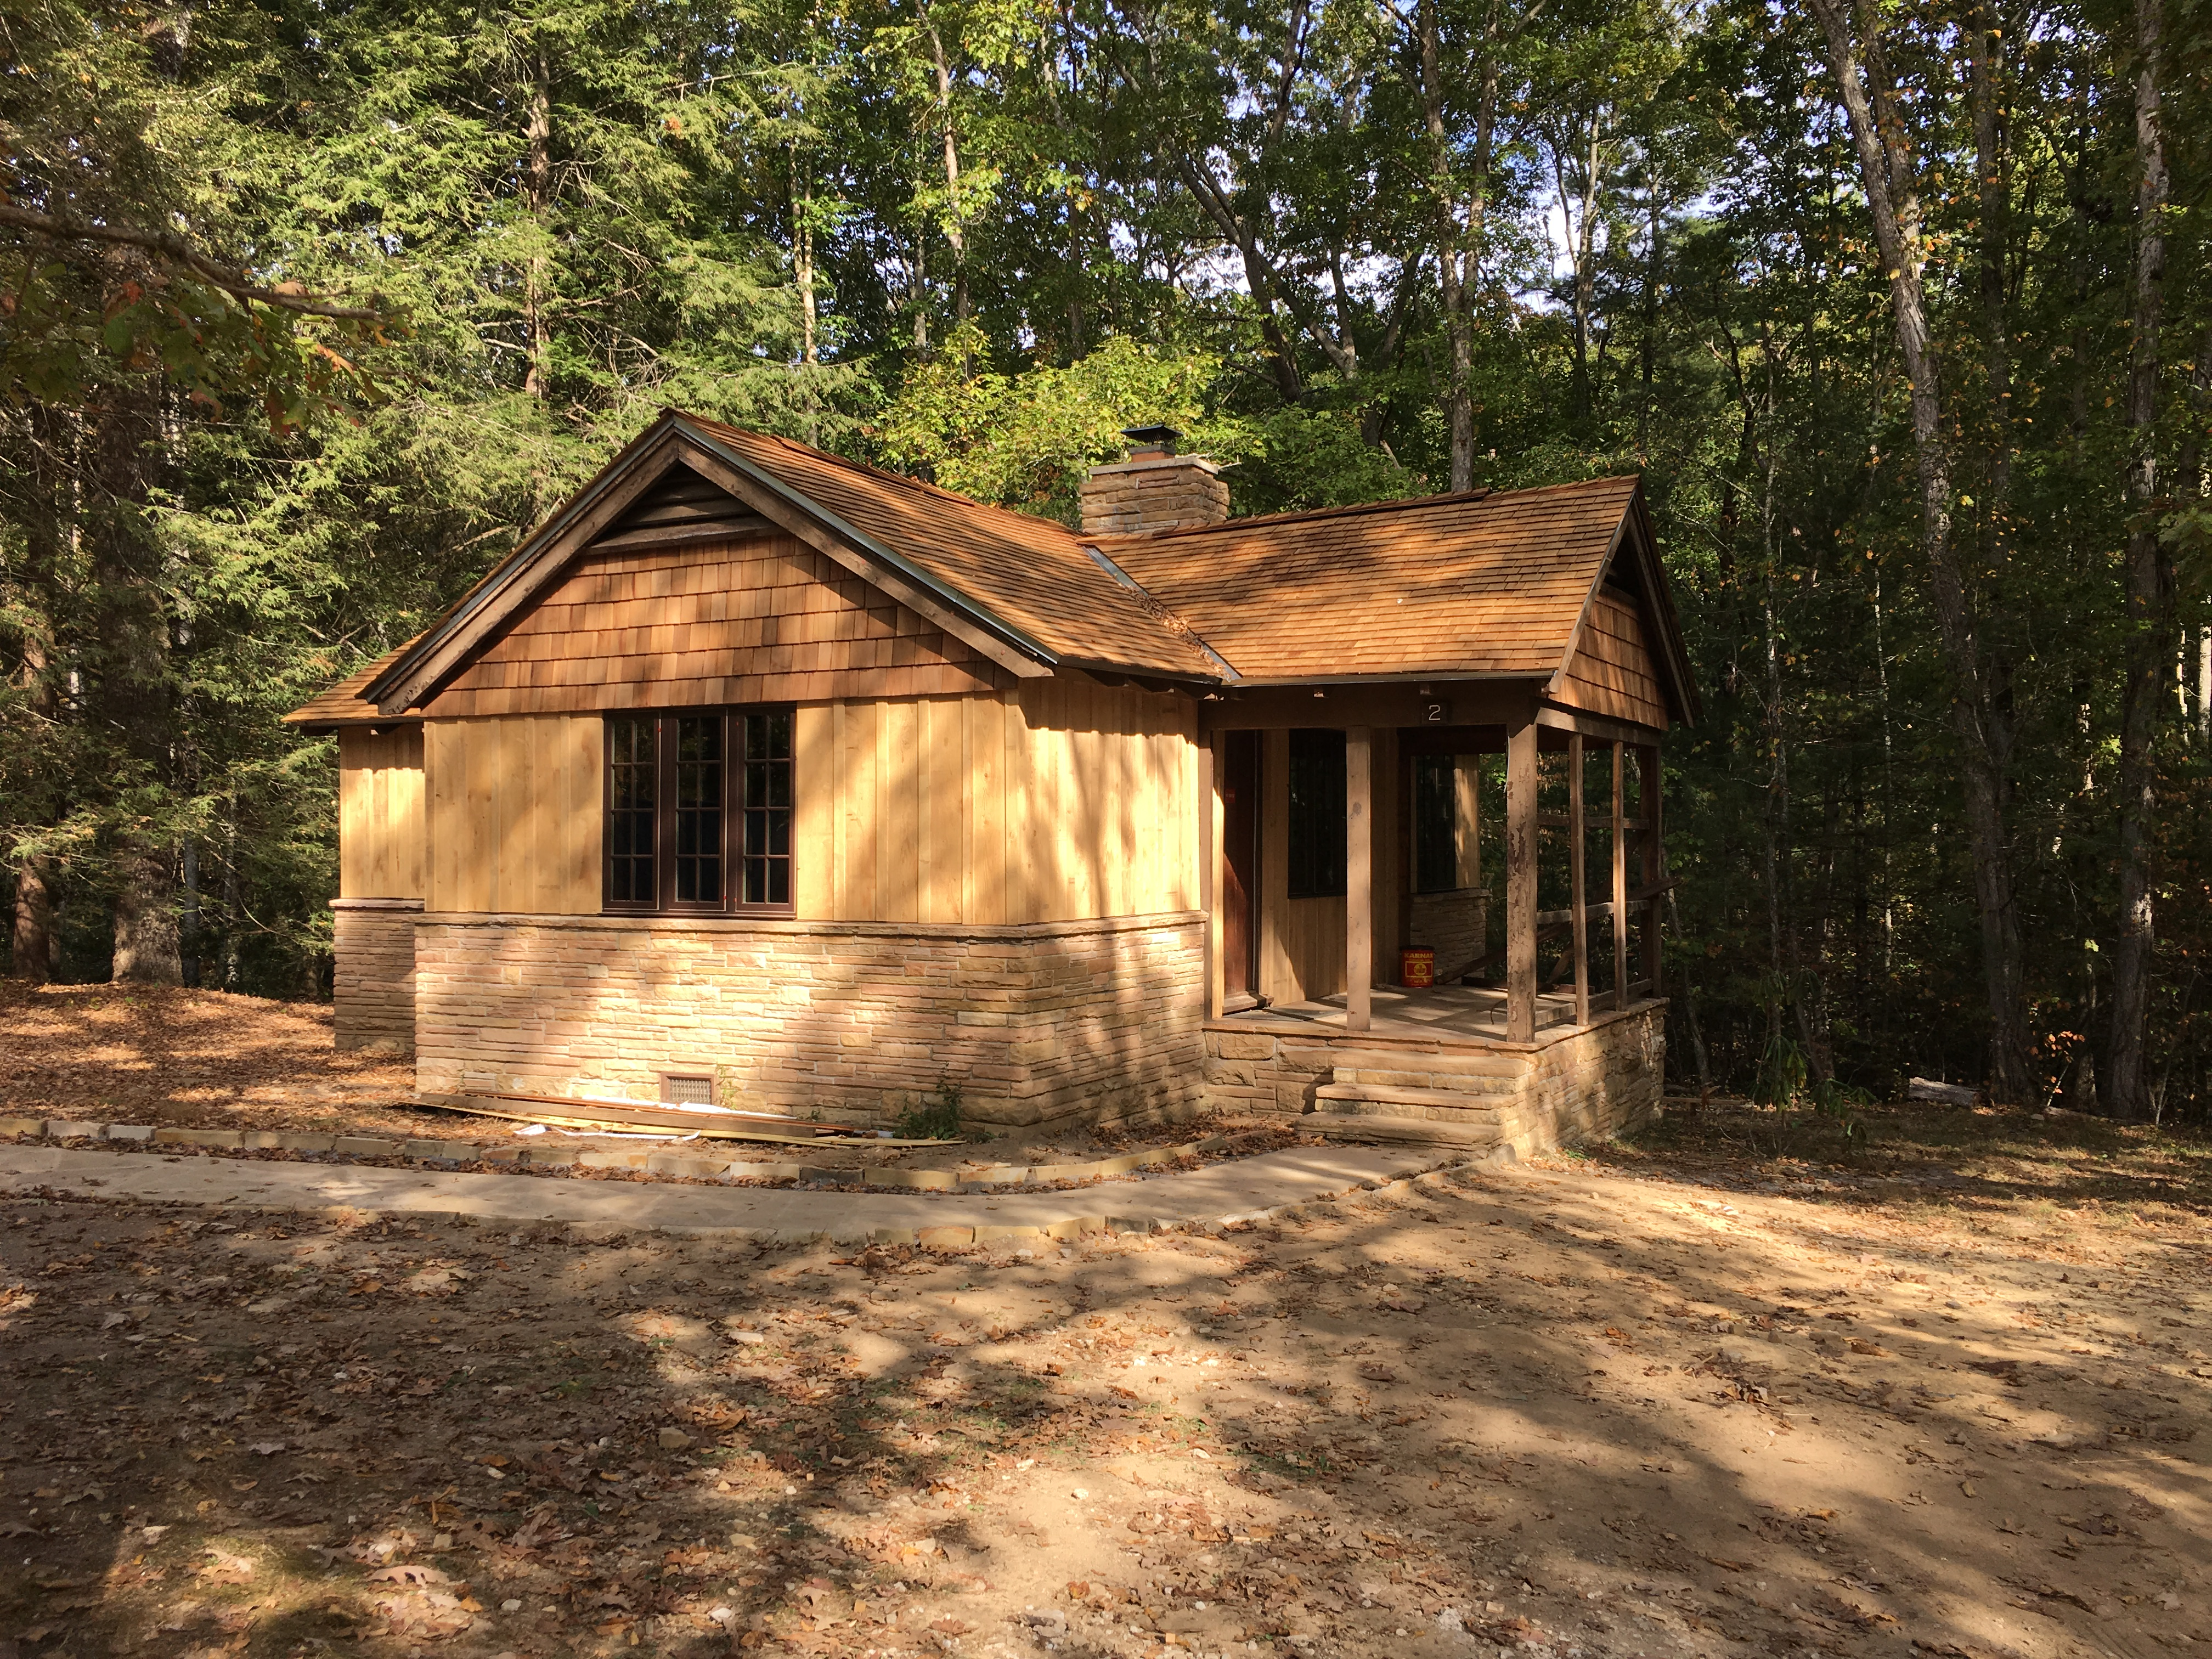 Civilian Conservation Corps Cabins